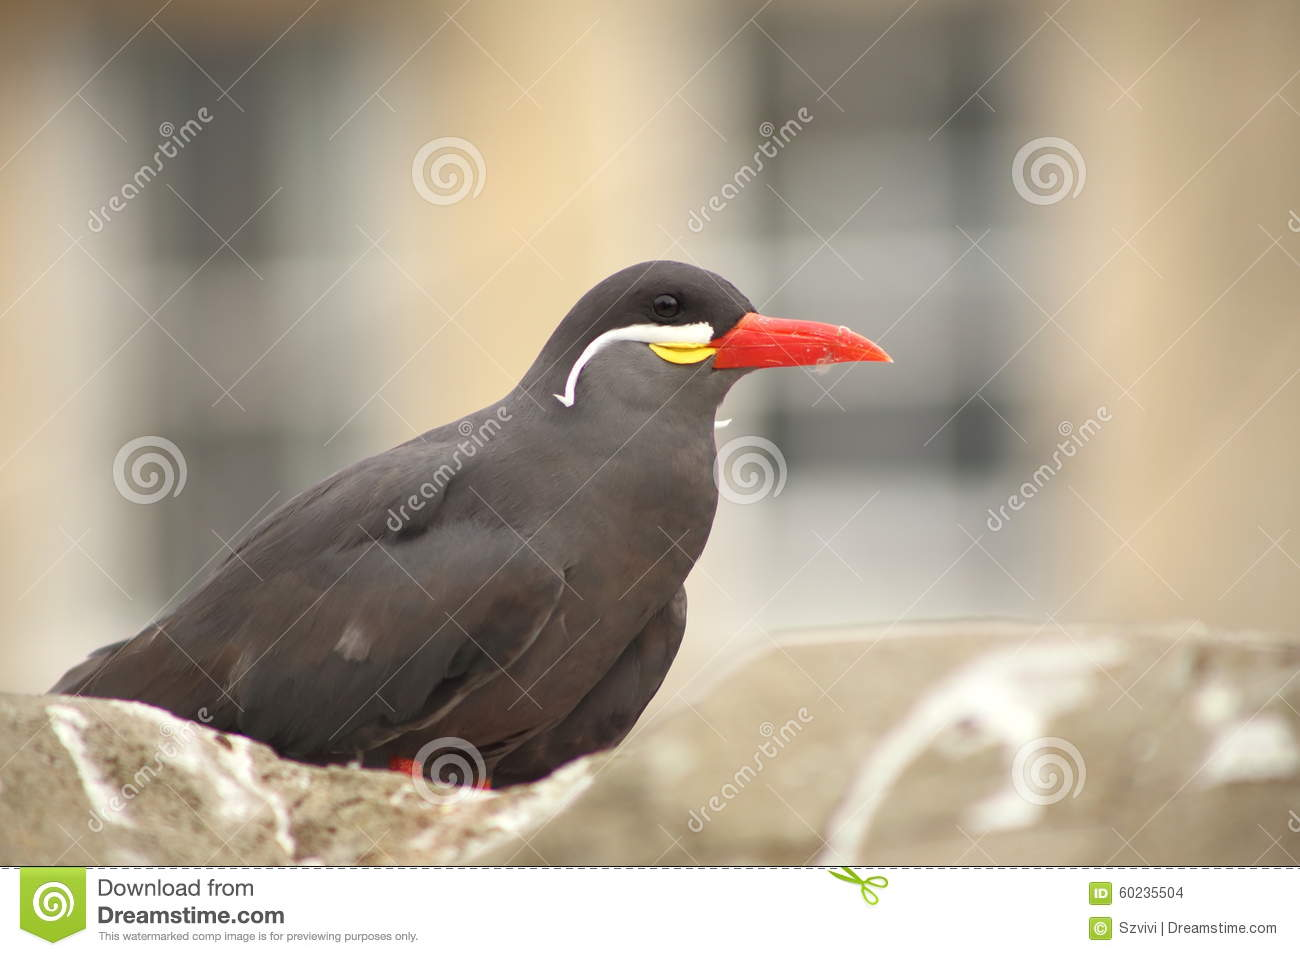 Inca Tern, A Bird With White Moustache In A Zoo. Stock Photo.